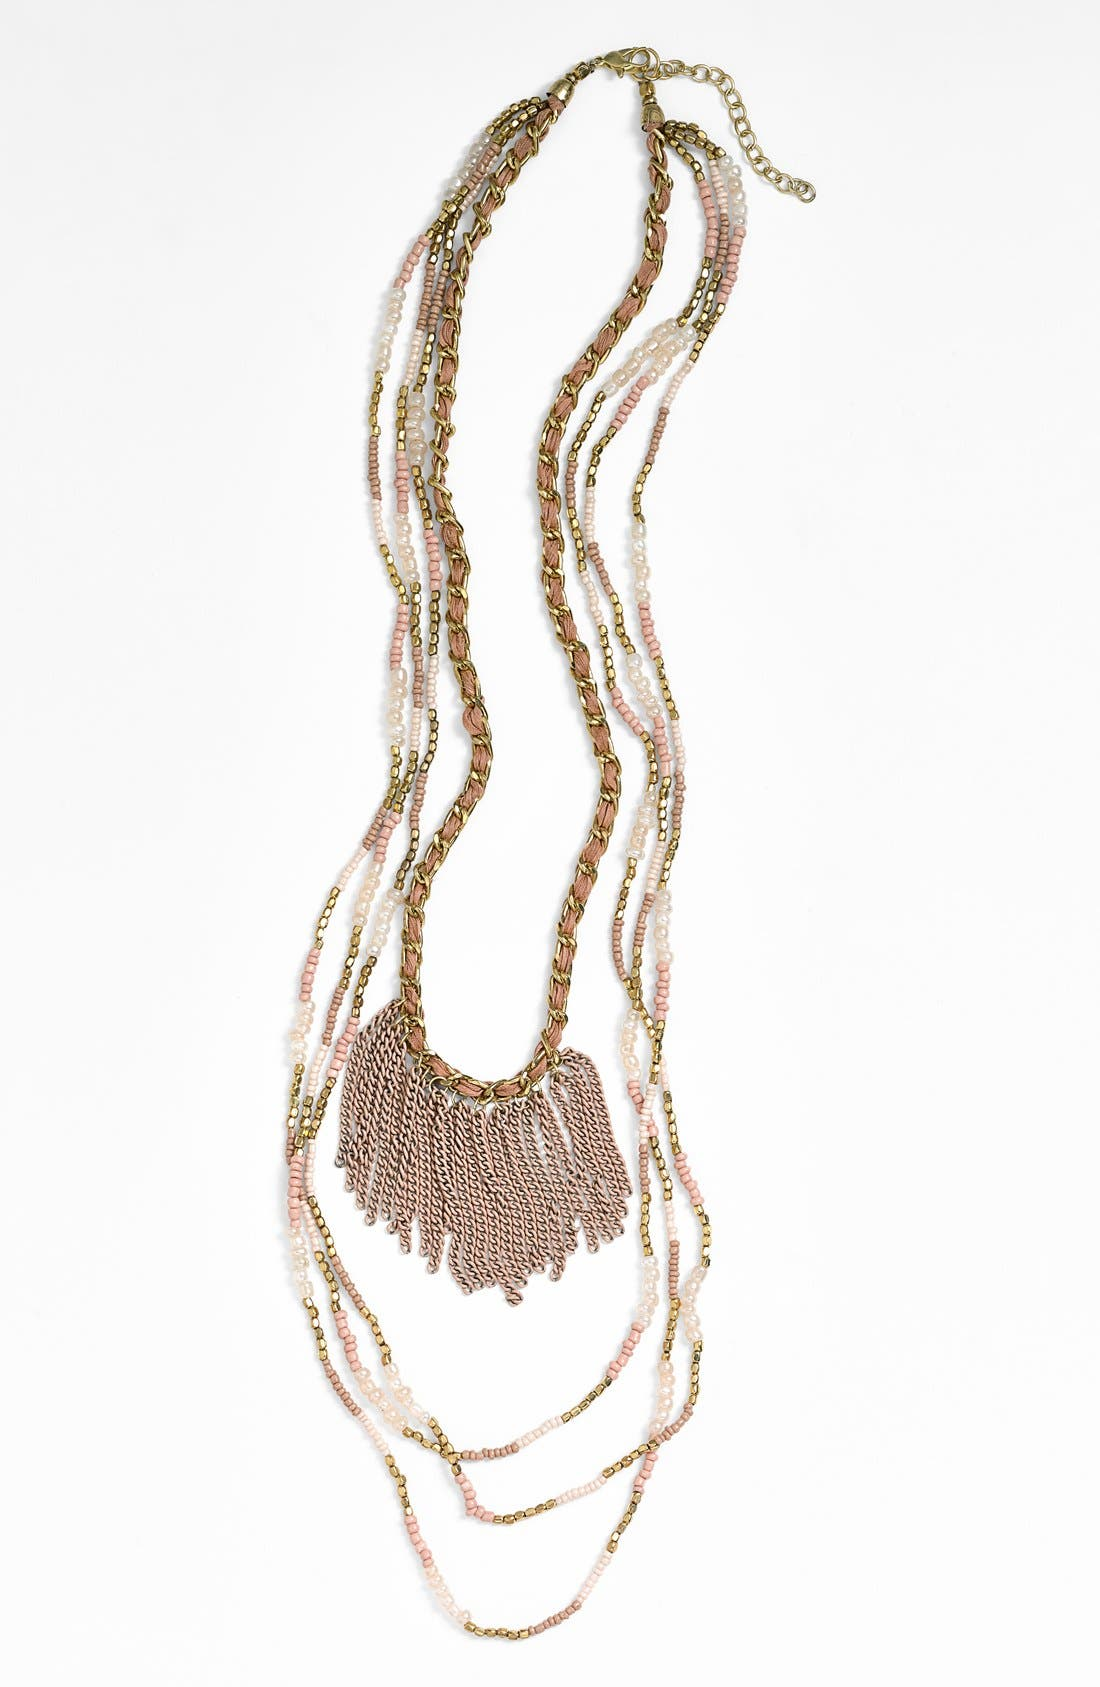 Alternate Image 1 Selected - Stephan & Co. Beaded Fringed Layered Chain Necklace (Juniors)